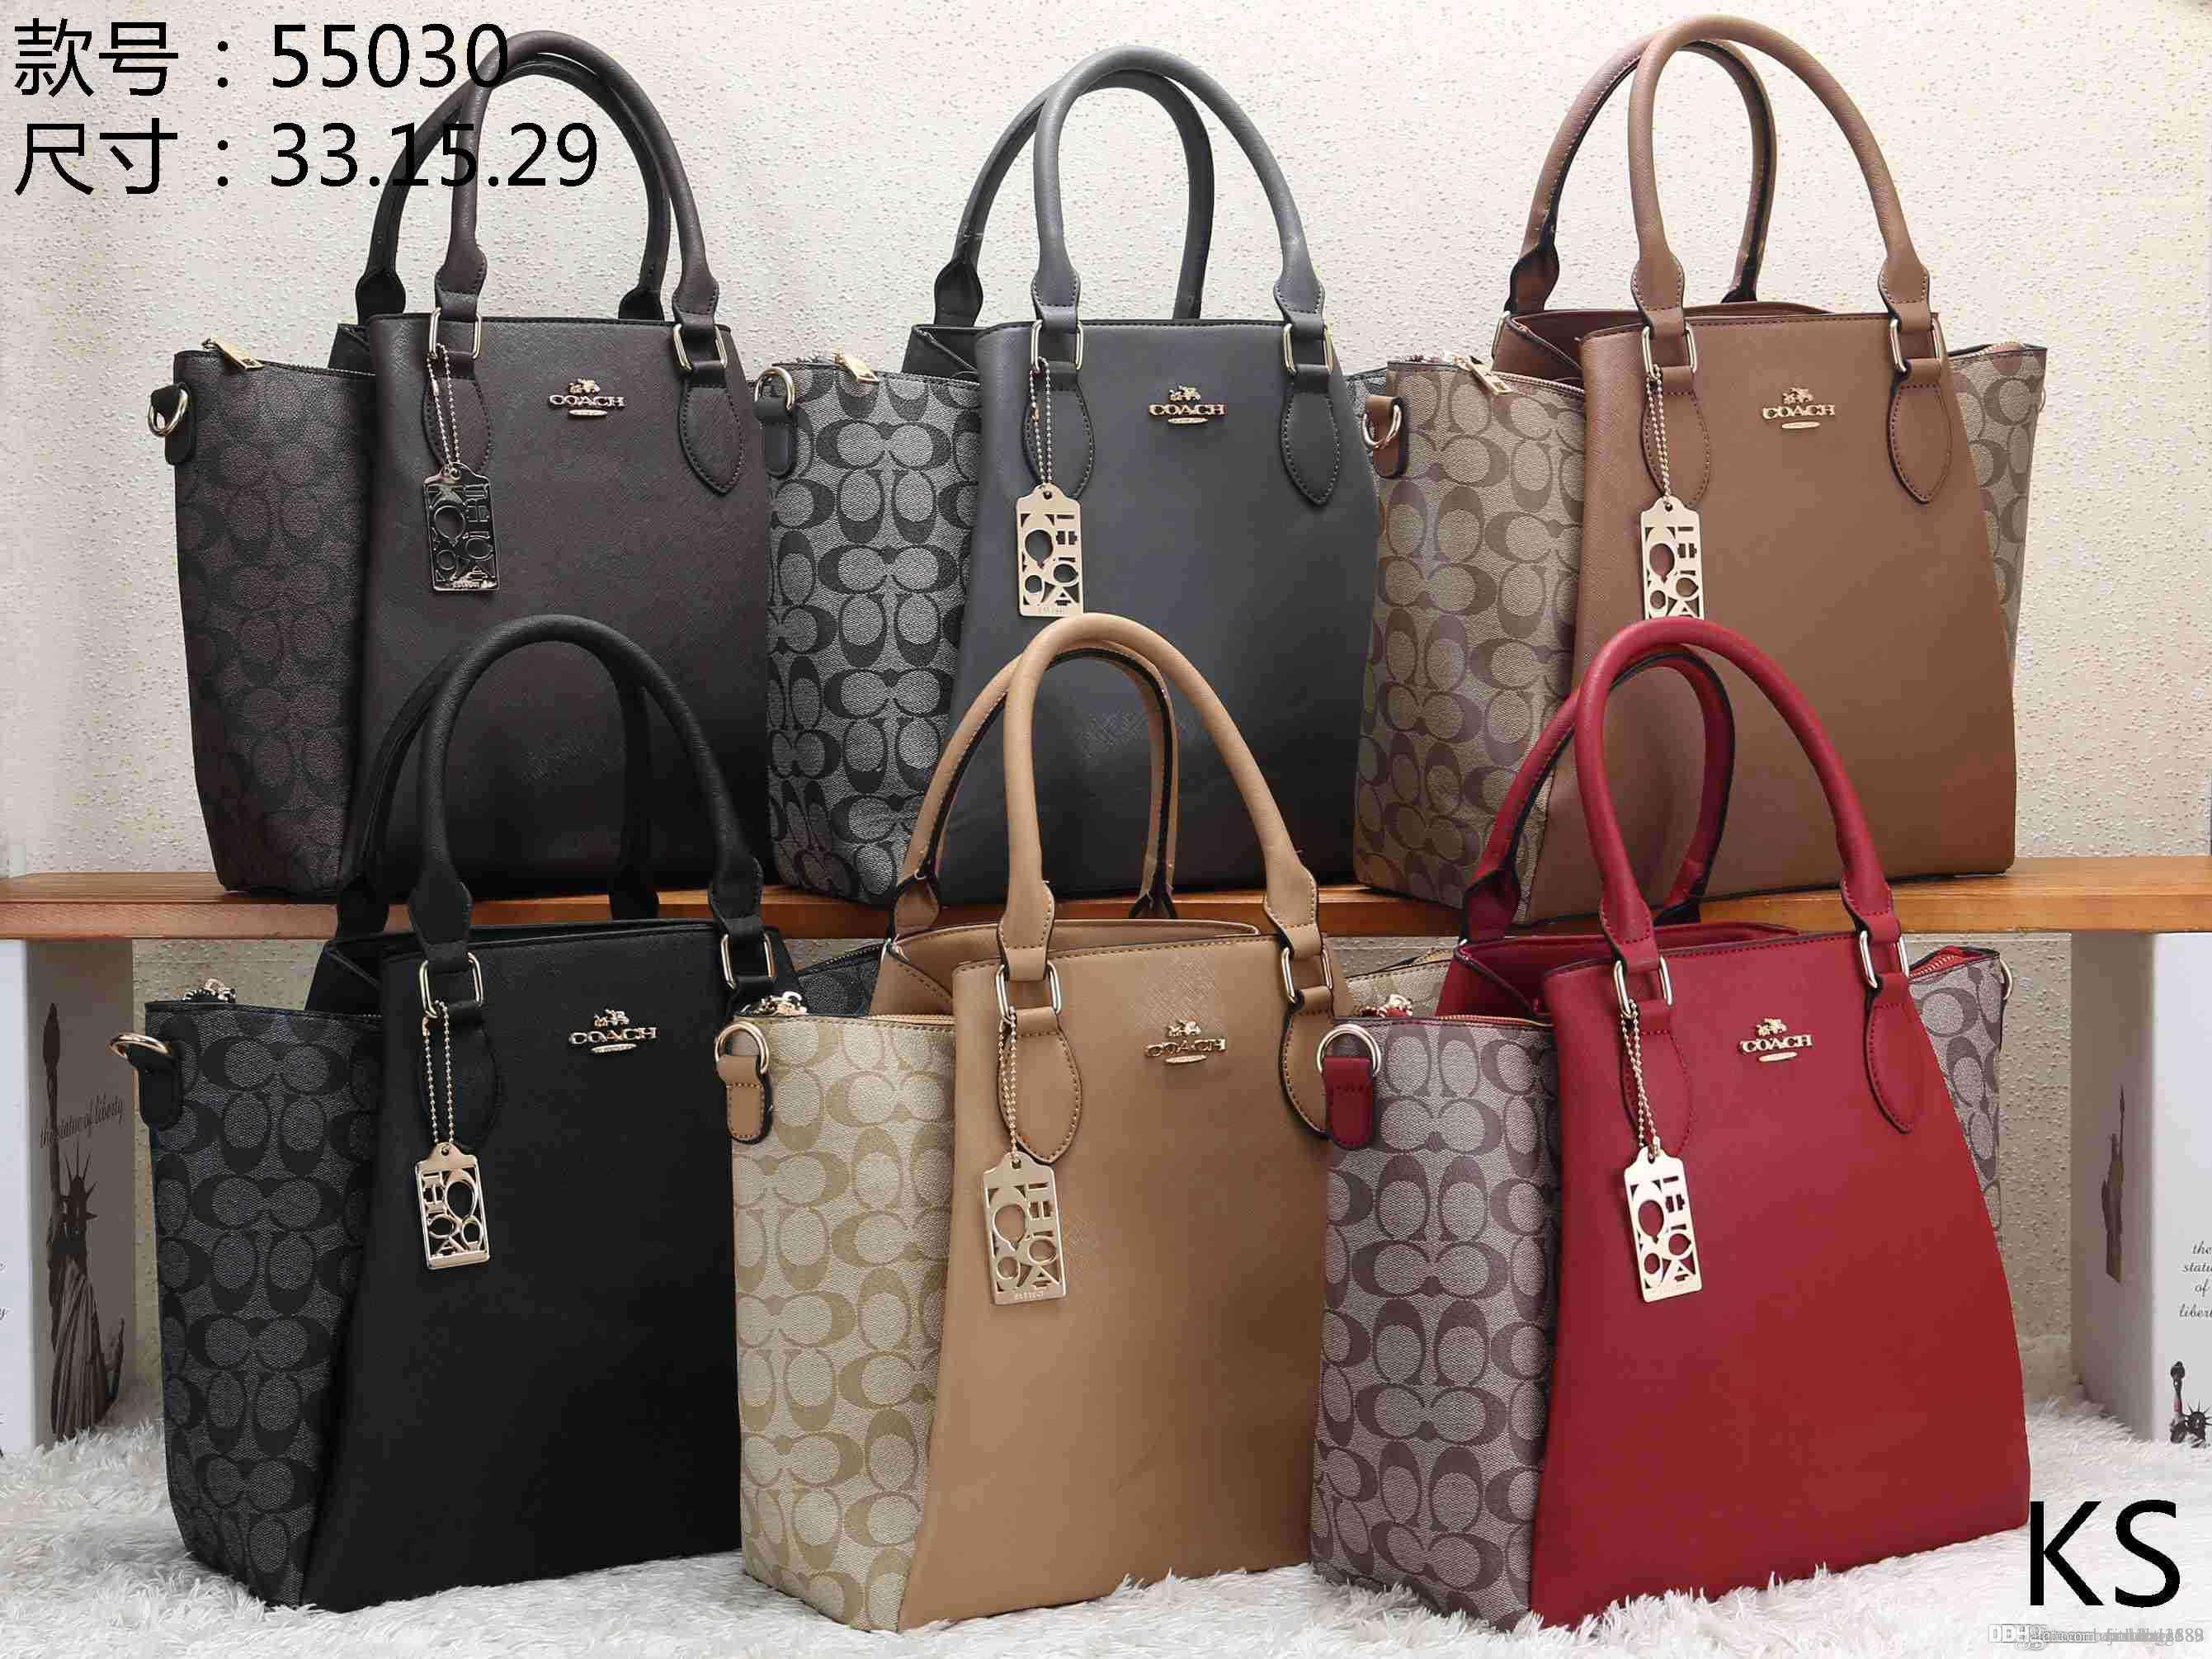 9ed4c60fa73a 2019 MK 55030 KS NEW Styles Fashion Bags Ladies Handbags Designer Bags  Women Tote Bag Luxury Brands Bags Single Shoulder Bag From Fmkbags888, ...